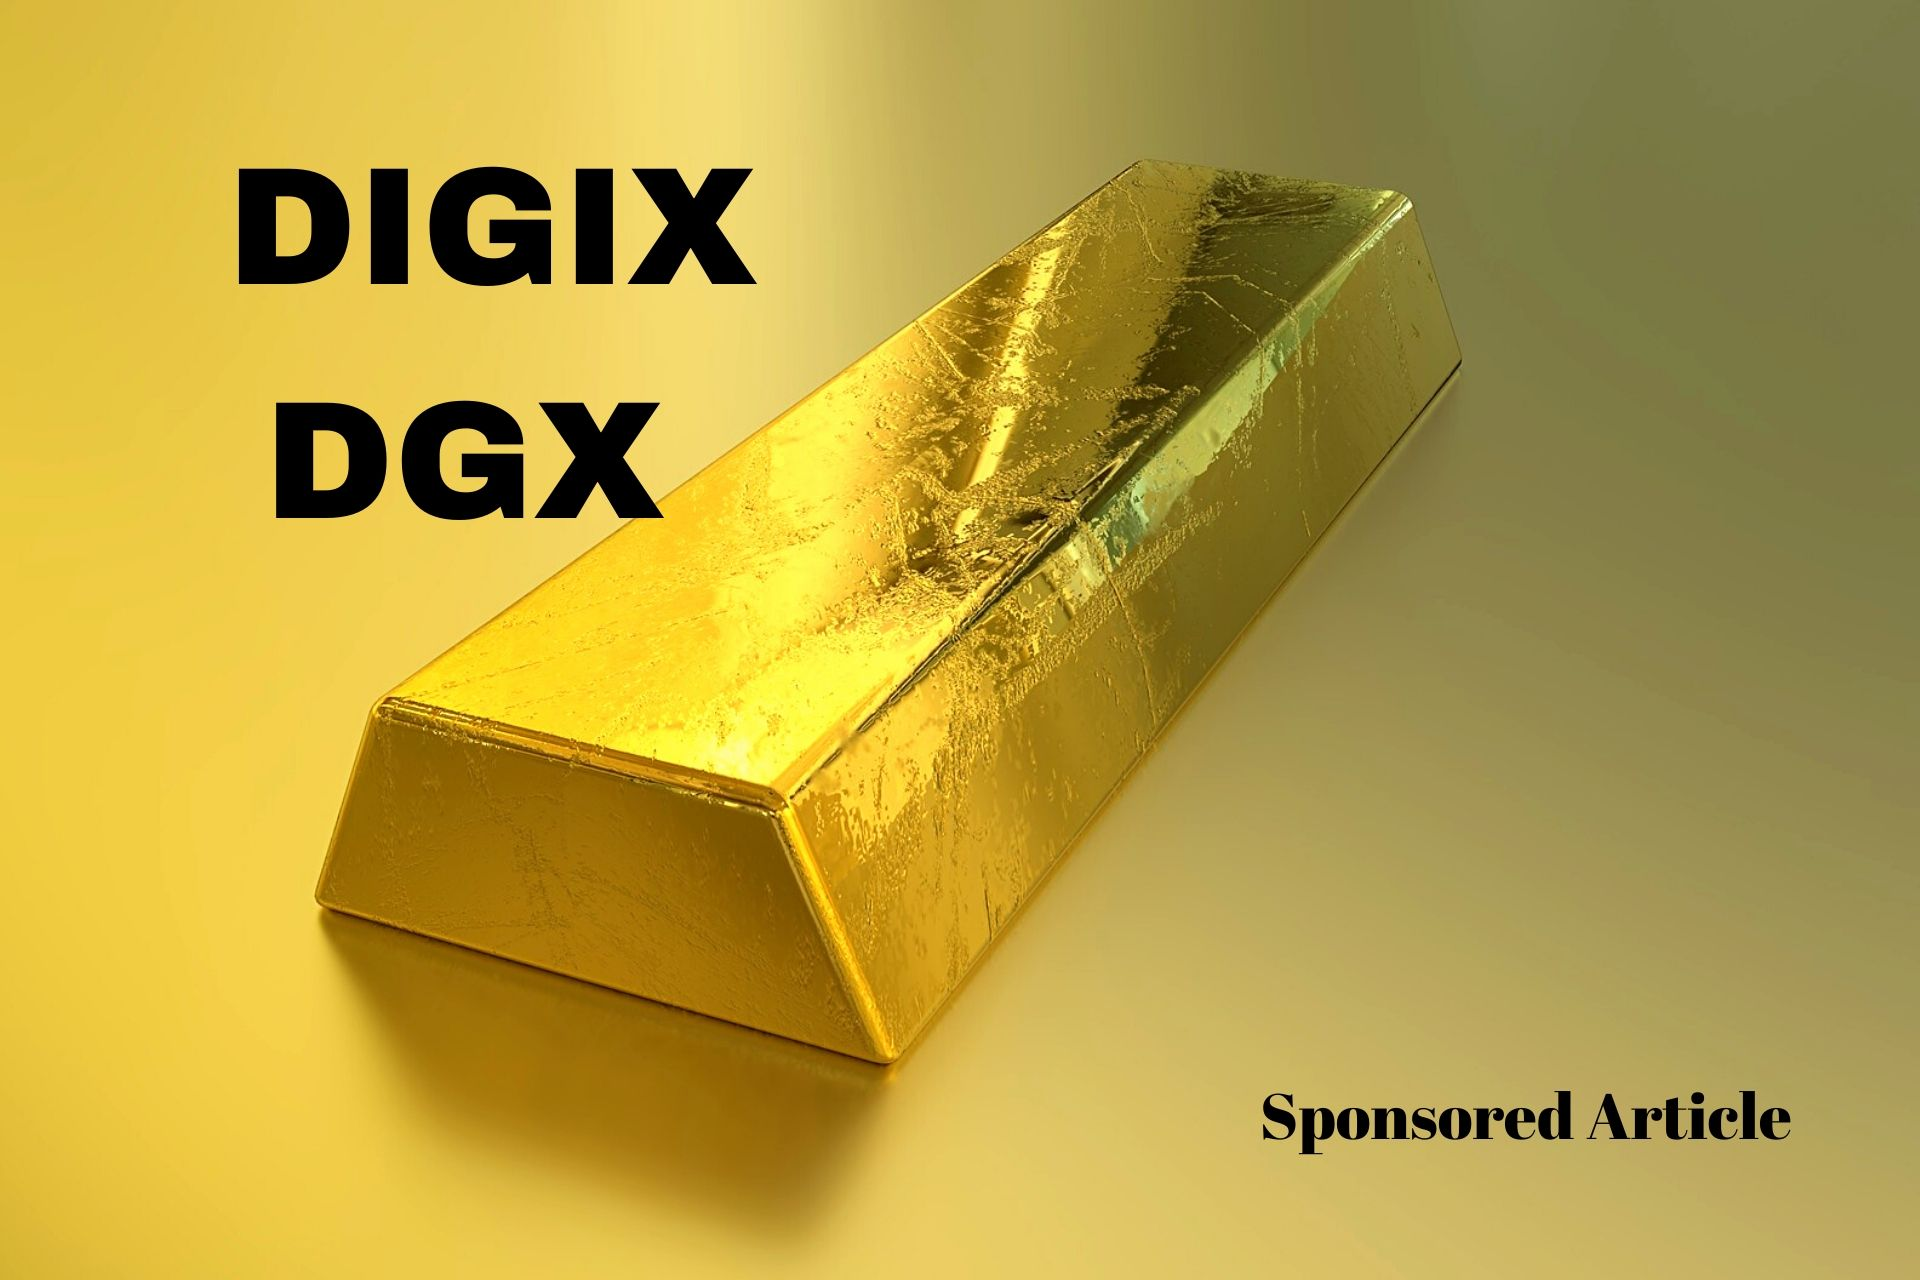 digix is reinventing gold